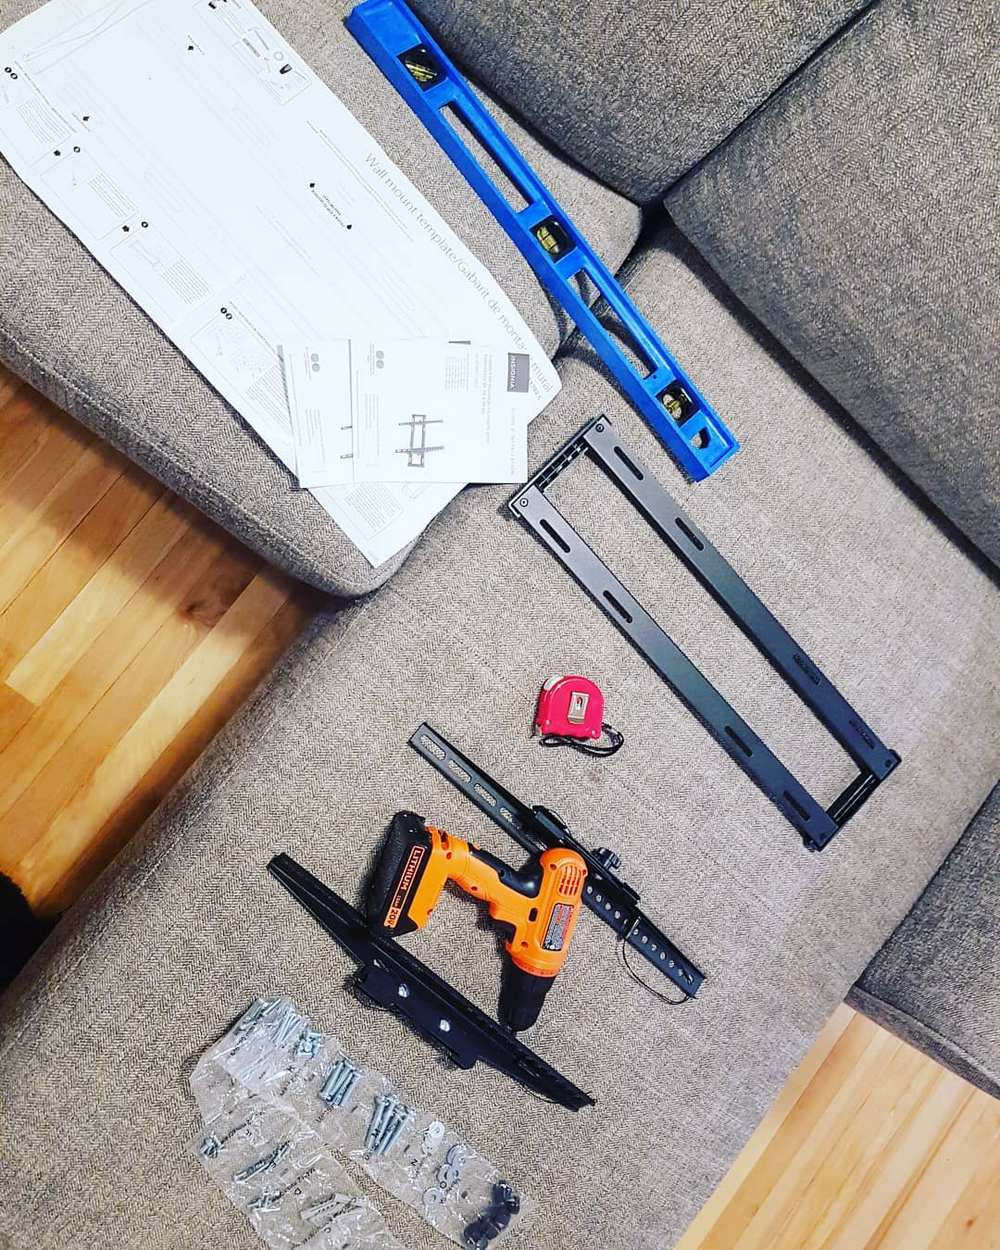 What Do You Need to Install a TV Wall Mount